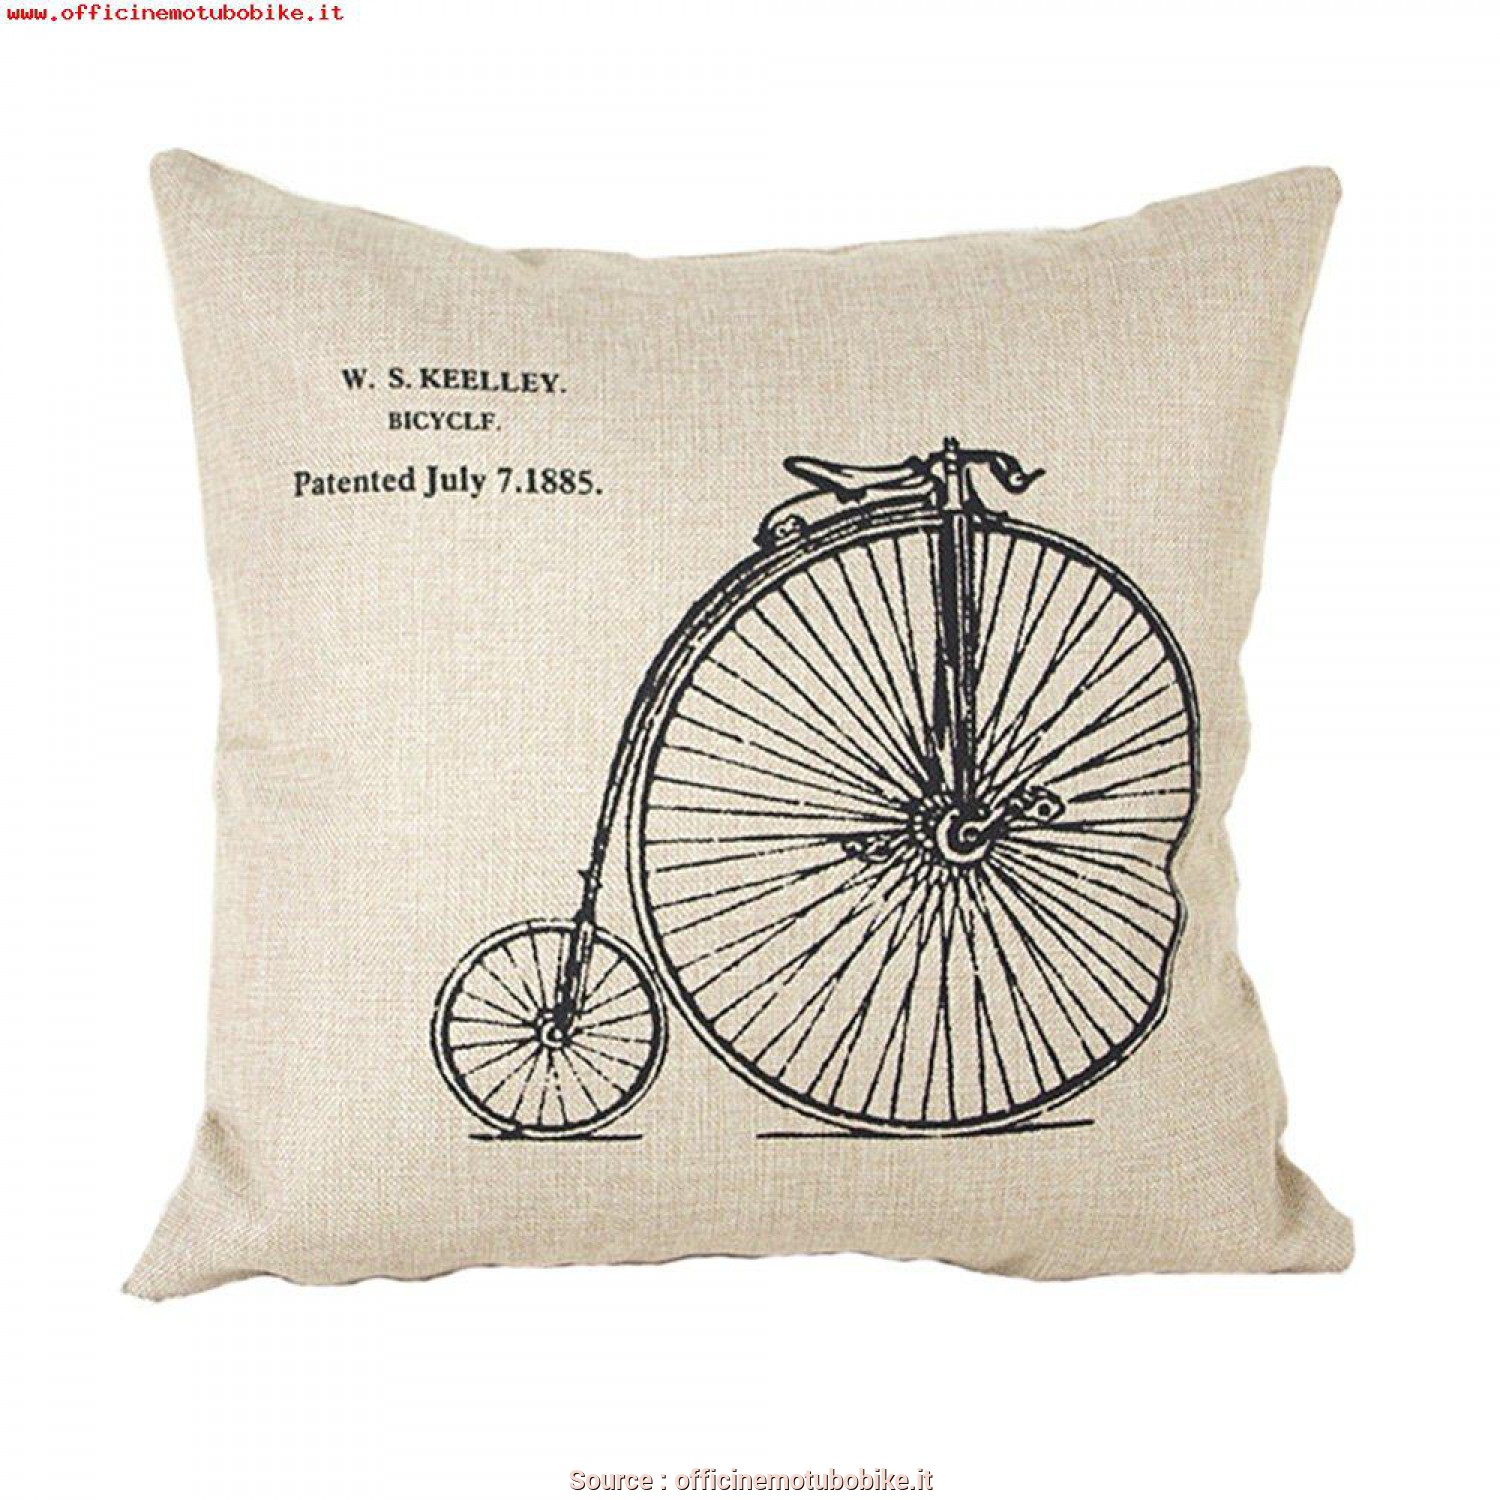 Federe X Cuscini Grandi, Originale Ineguagliabile Luxbon-Cotton Lino Throw Pillow Covers Cuscino Decorativo Federa Bike, Ruota Grandi E Piccole